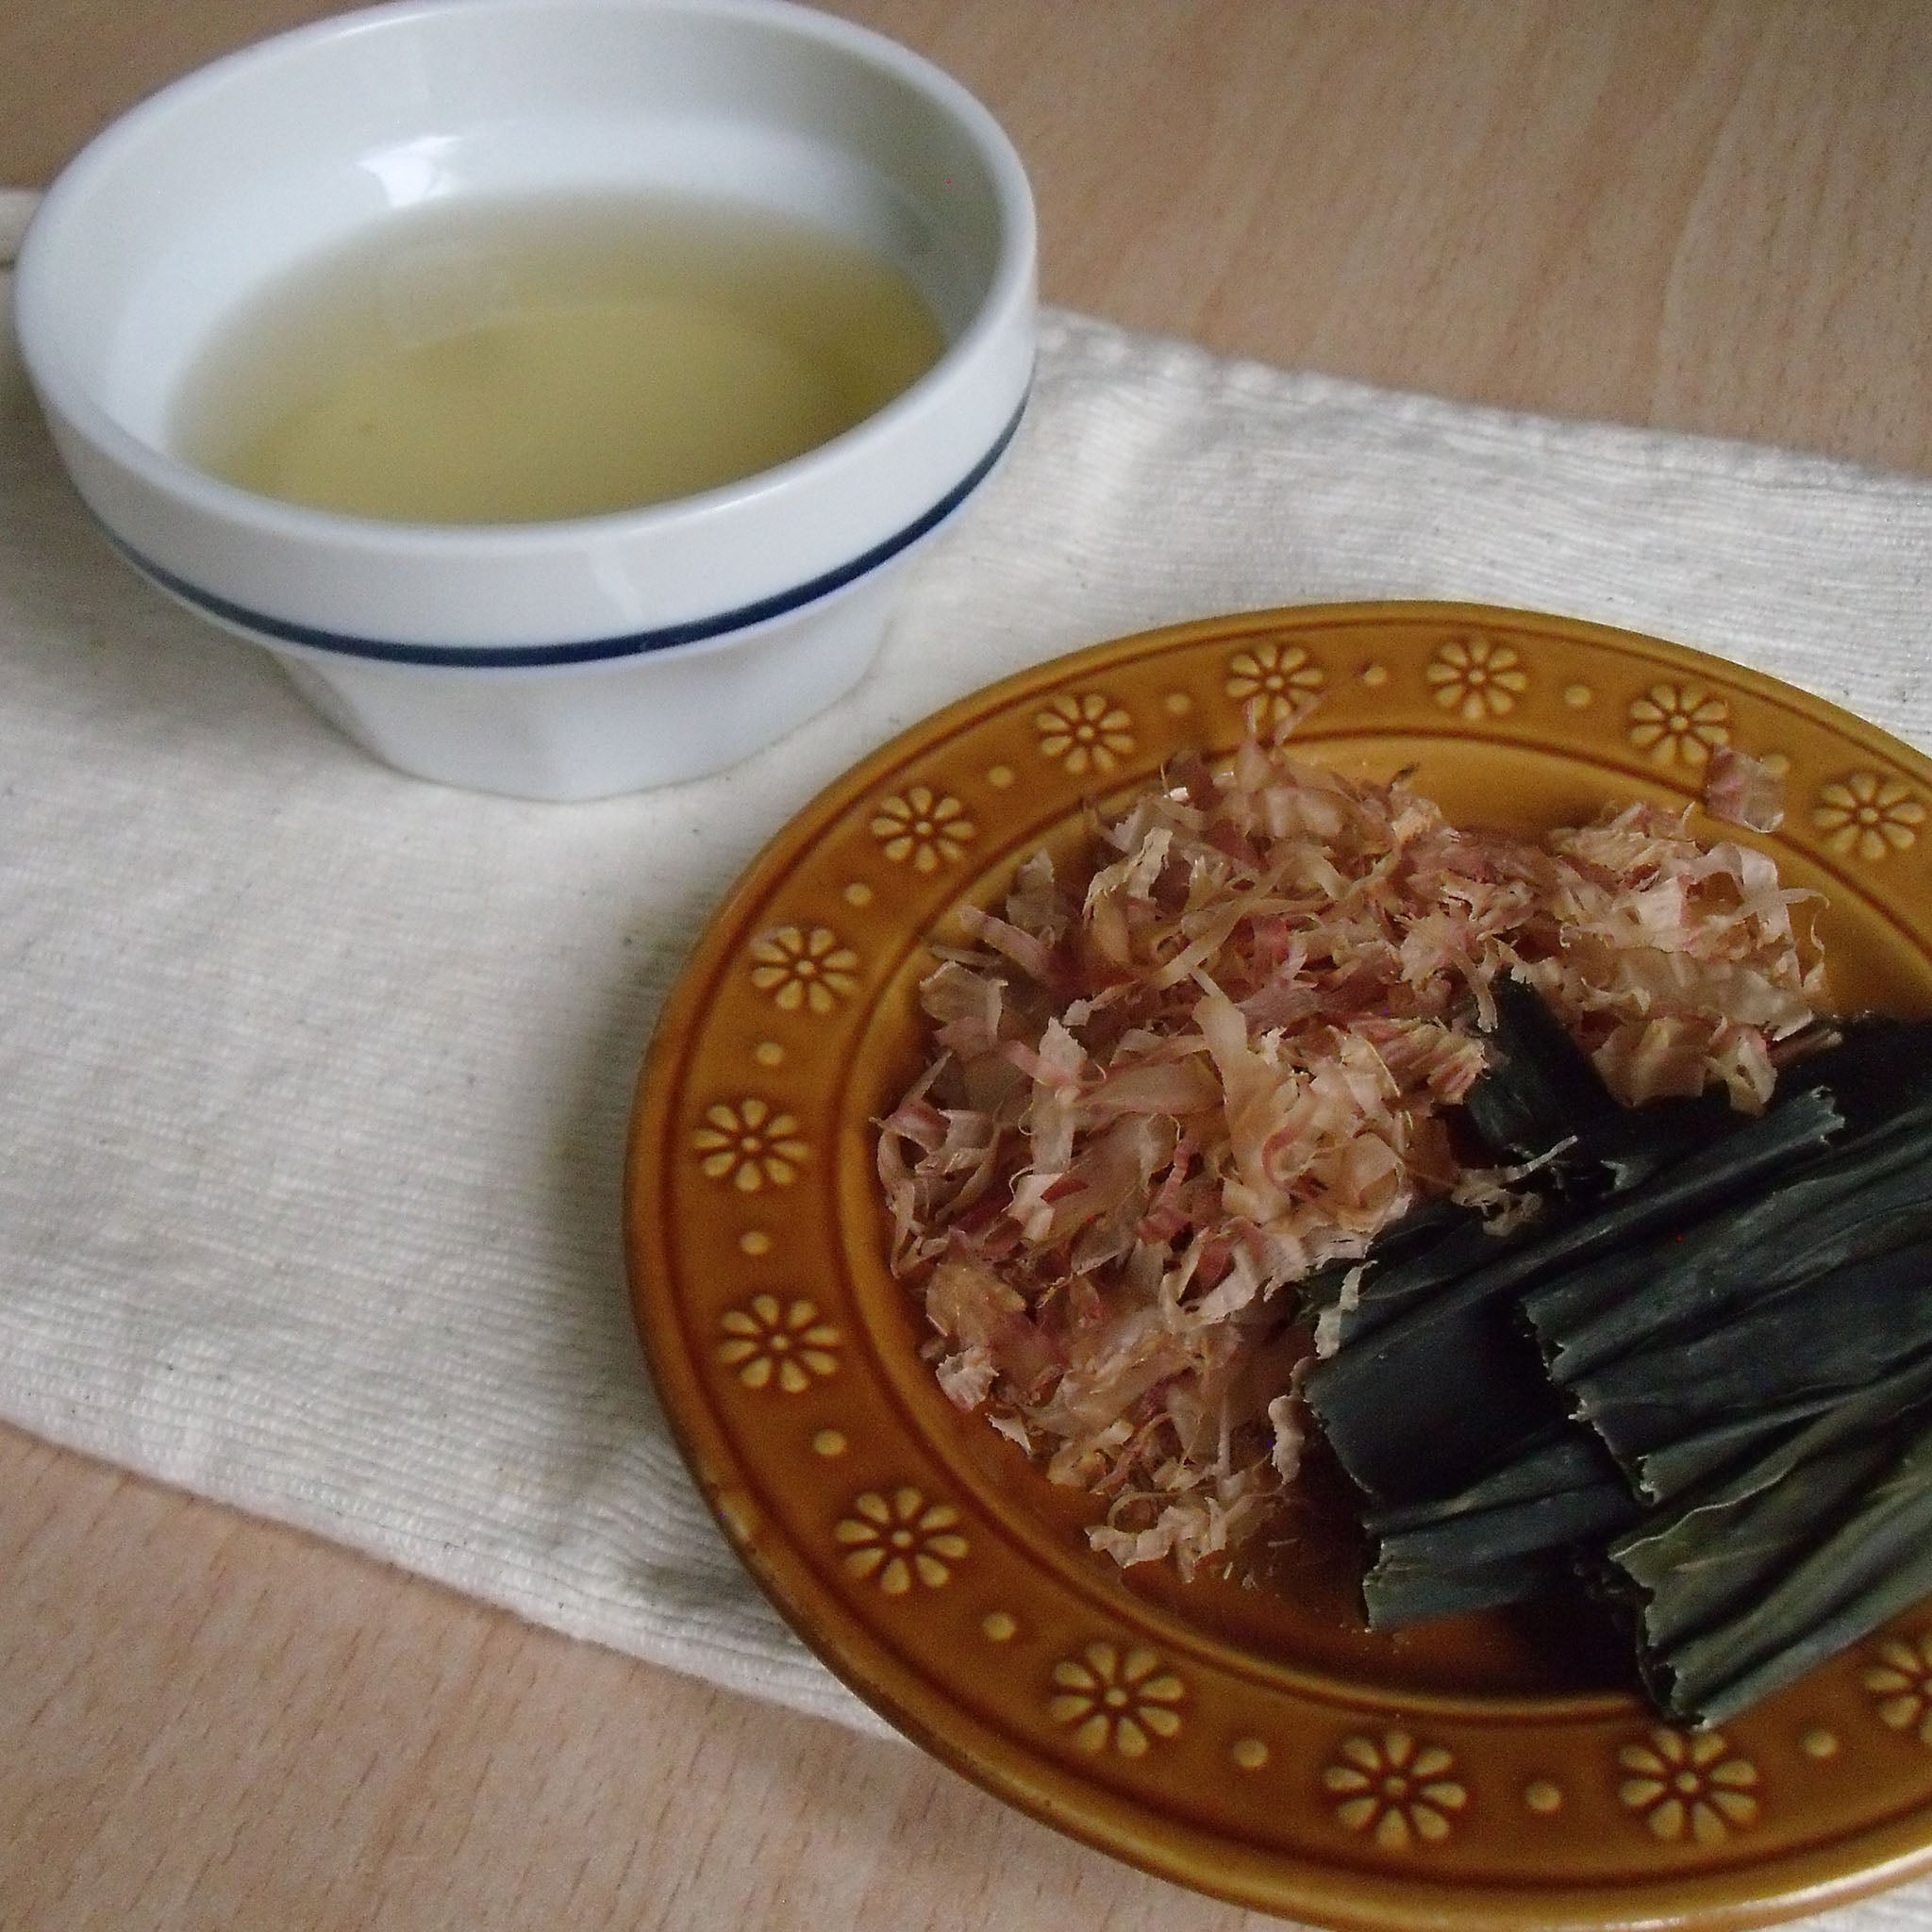 Dashi (Japanese Soup Stock)